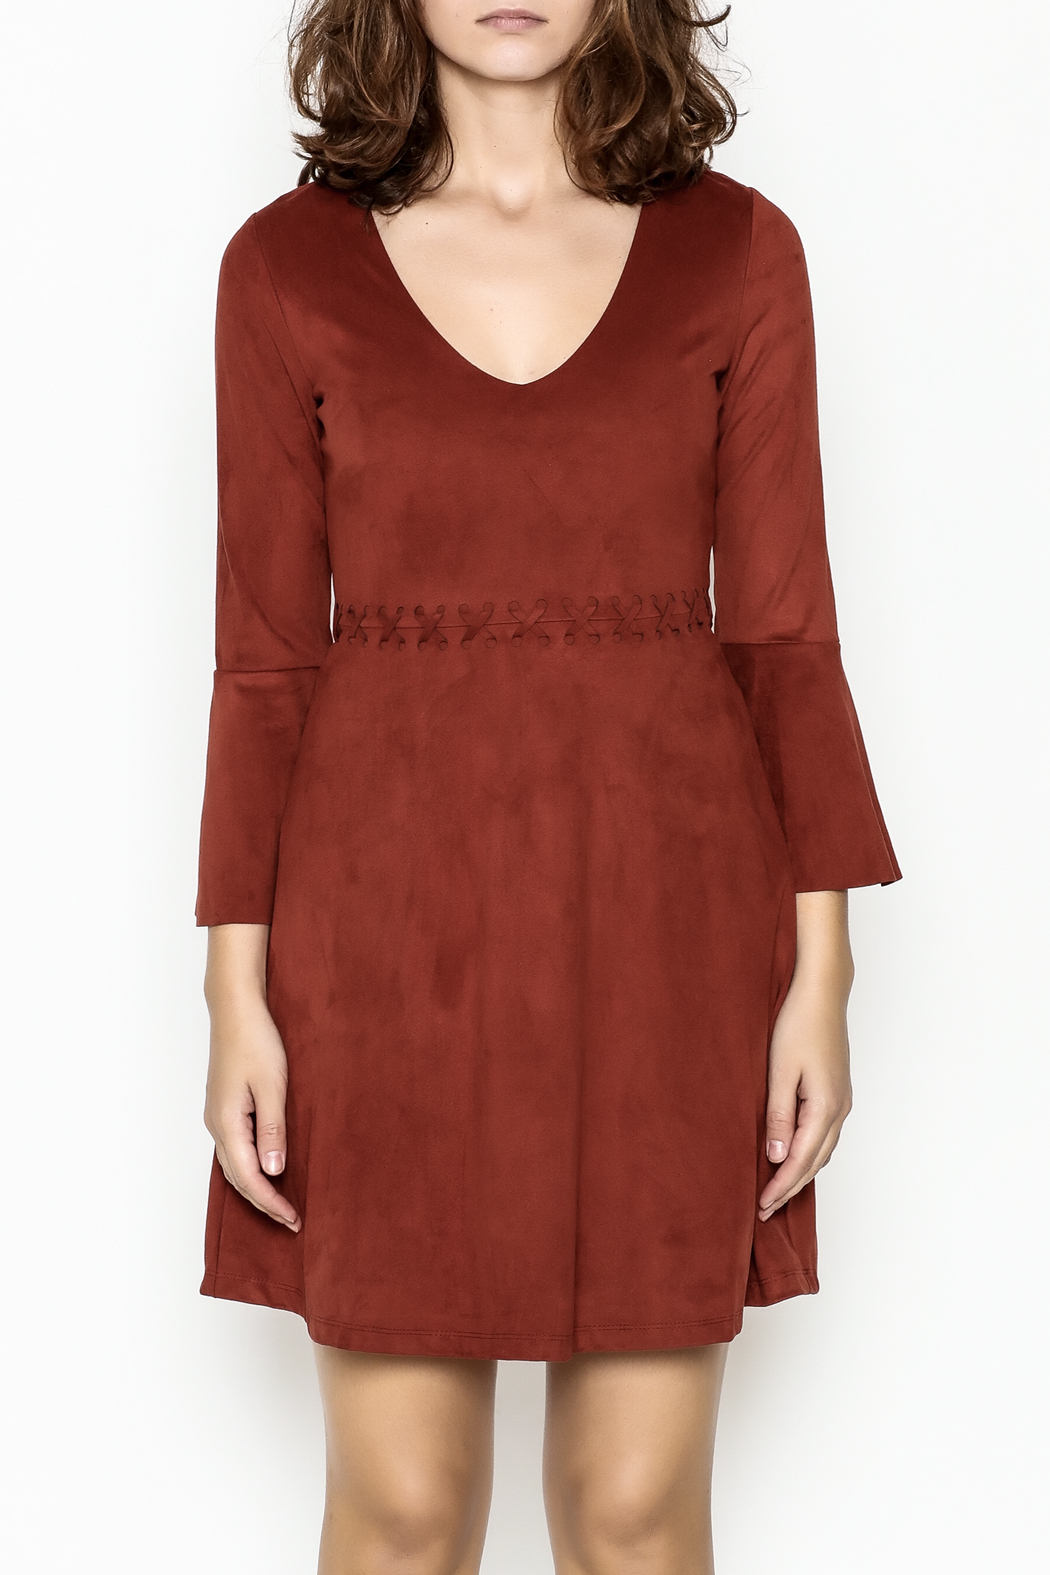 Black Swan Faux Suede Rust Dress - Front Full Image